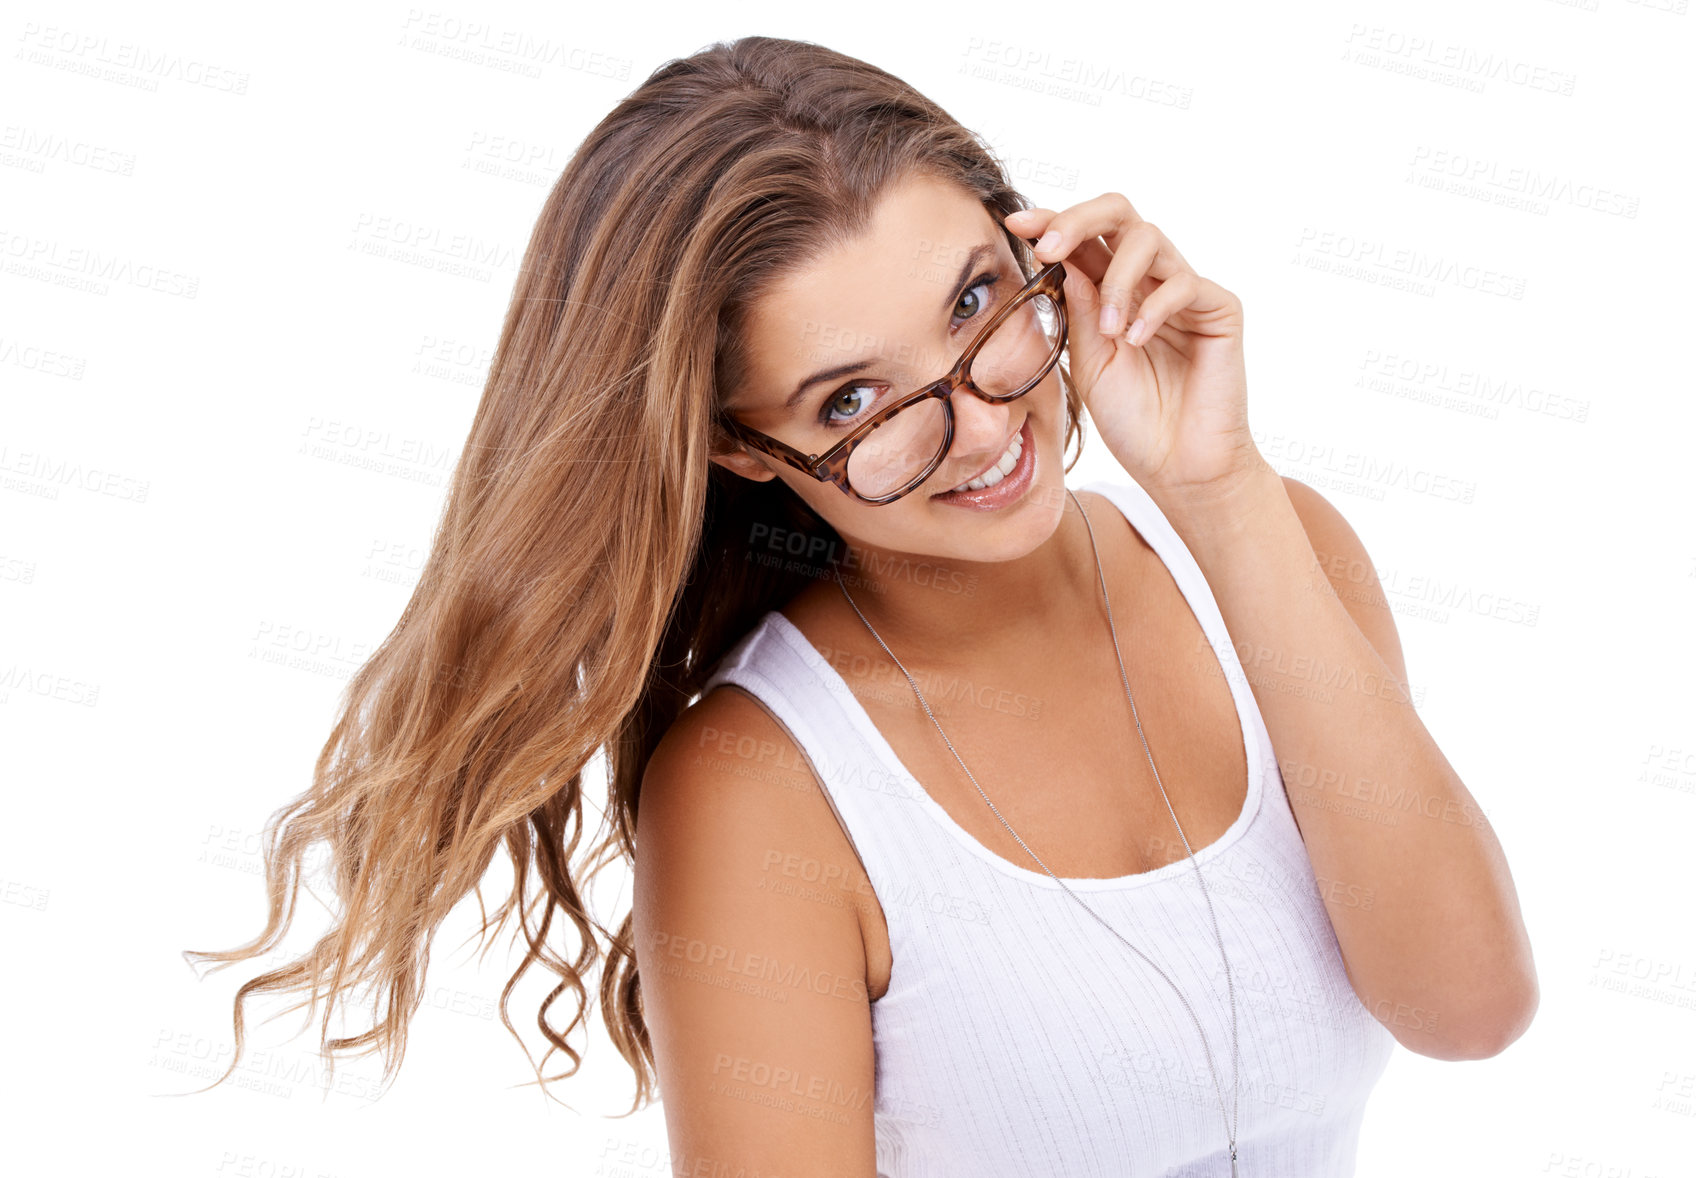 Buy stock photo Portrait of an attractive young woman wearing glasses